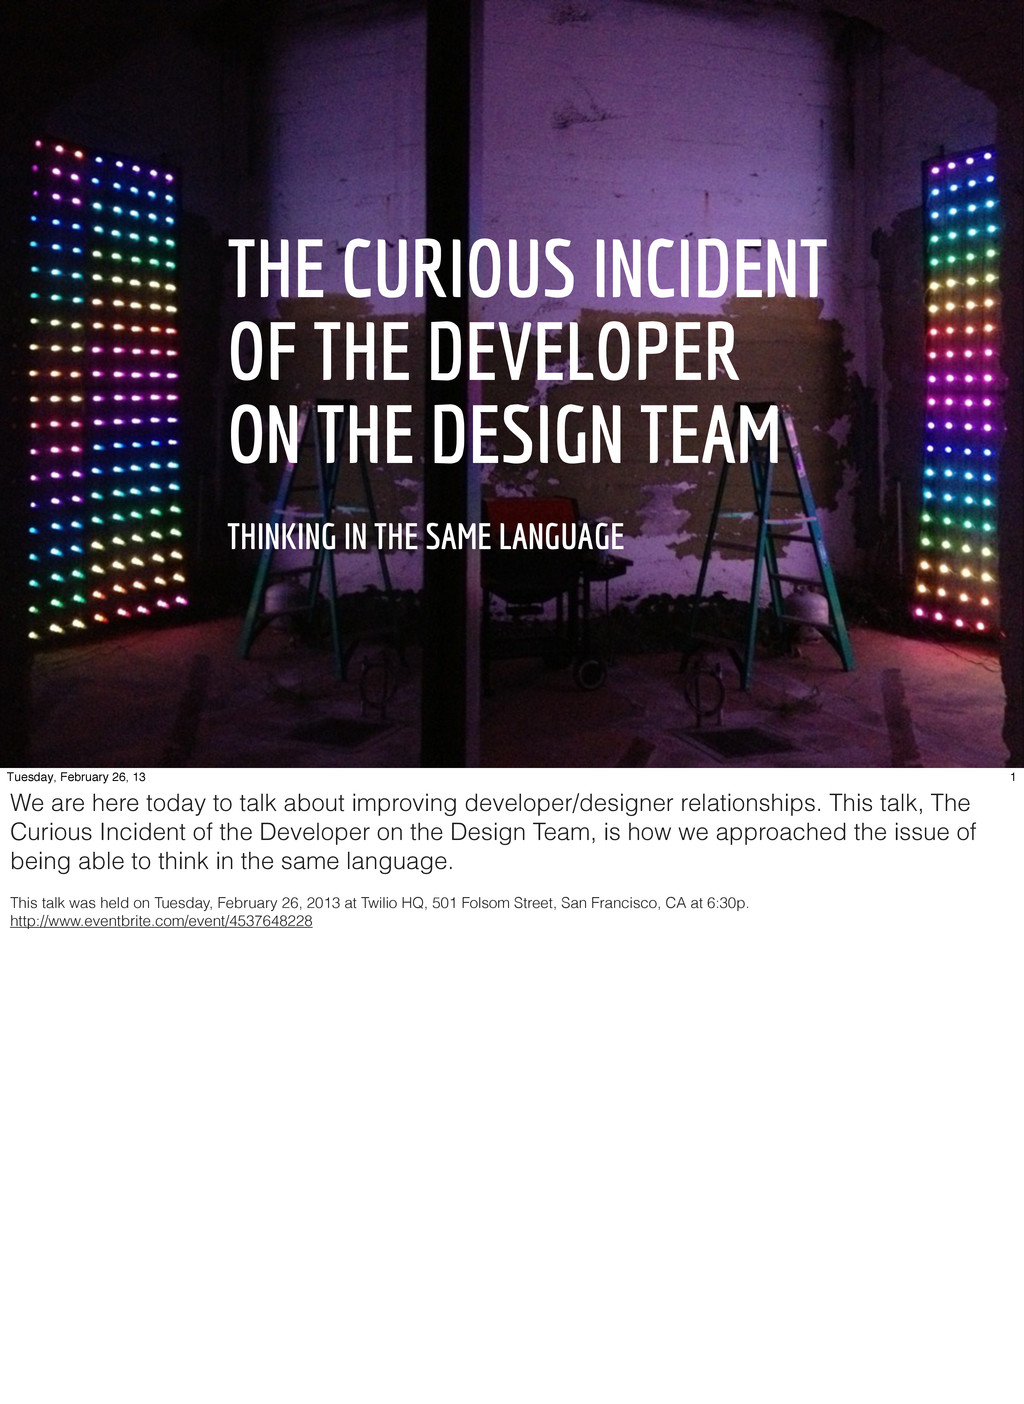 THE CURIOUS INCIDENT OF THE DEVELOPER ON THE DE...